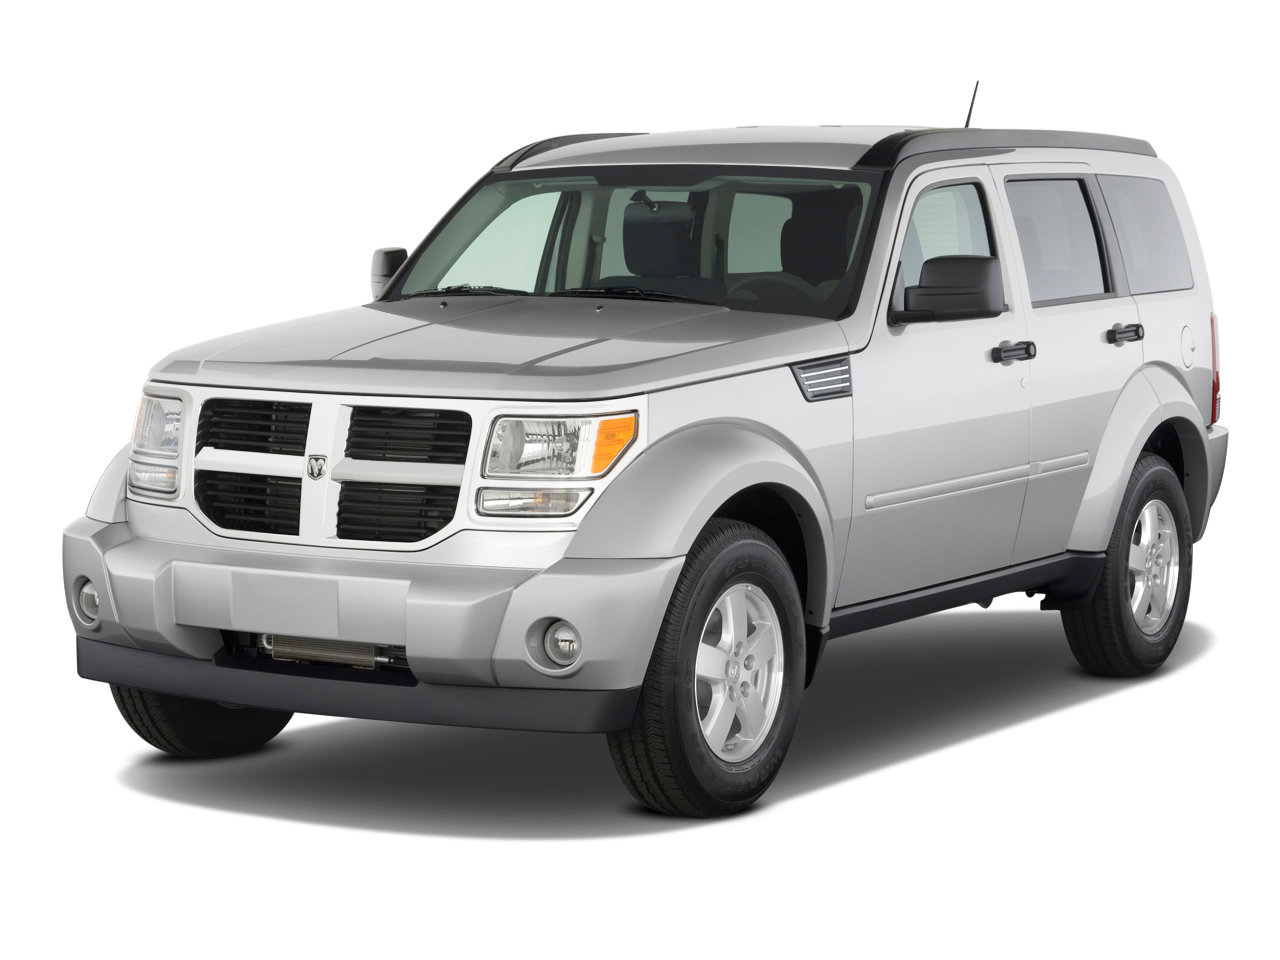 2011 Dodge Nitro Review Ratings Specs Prices And Photos The Car Connection